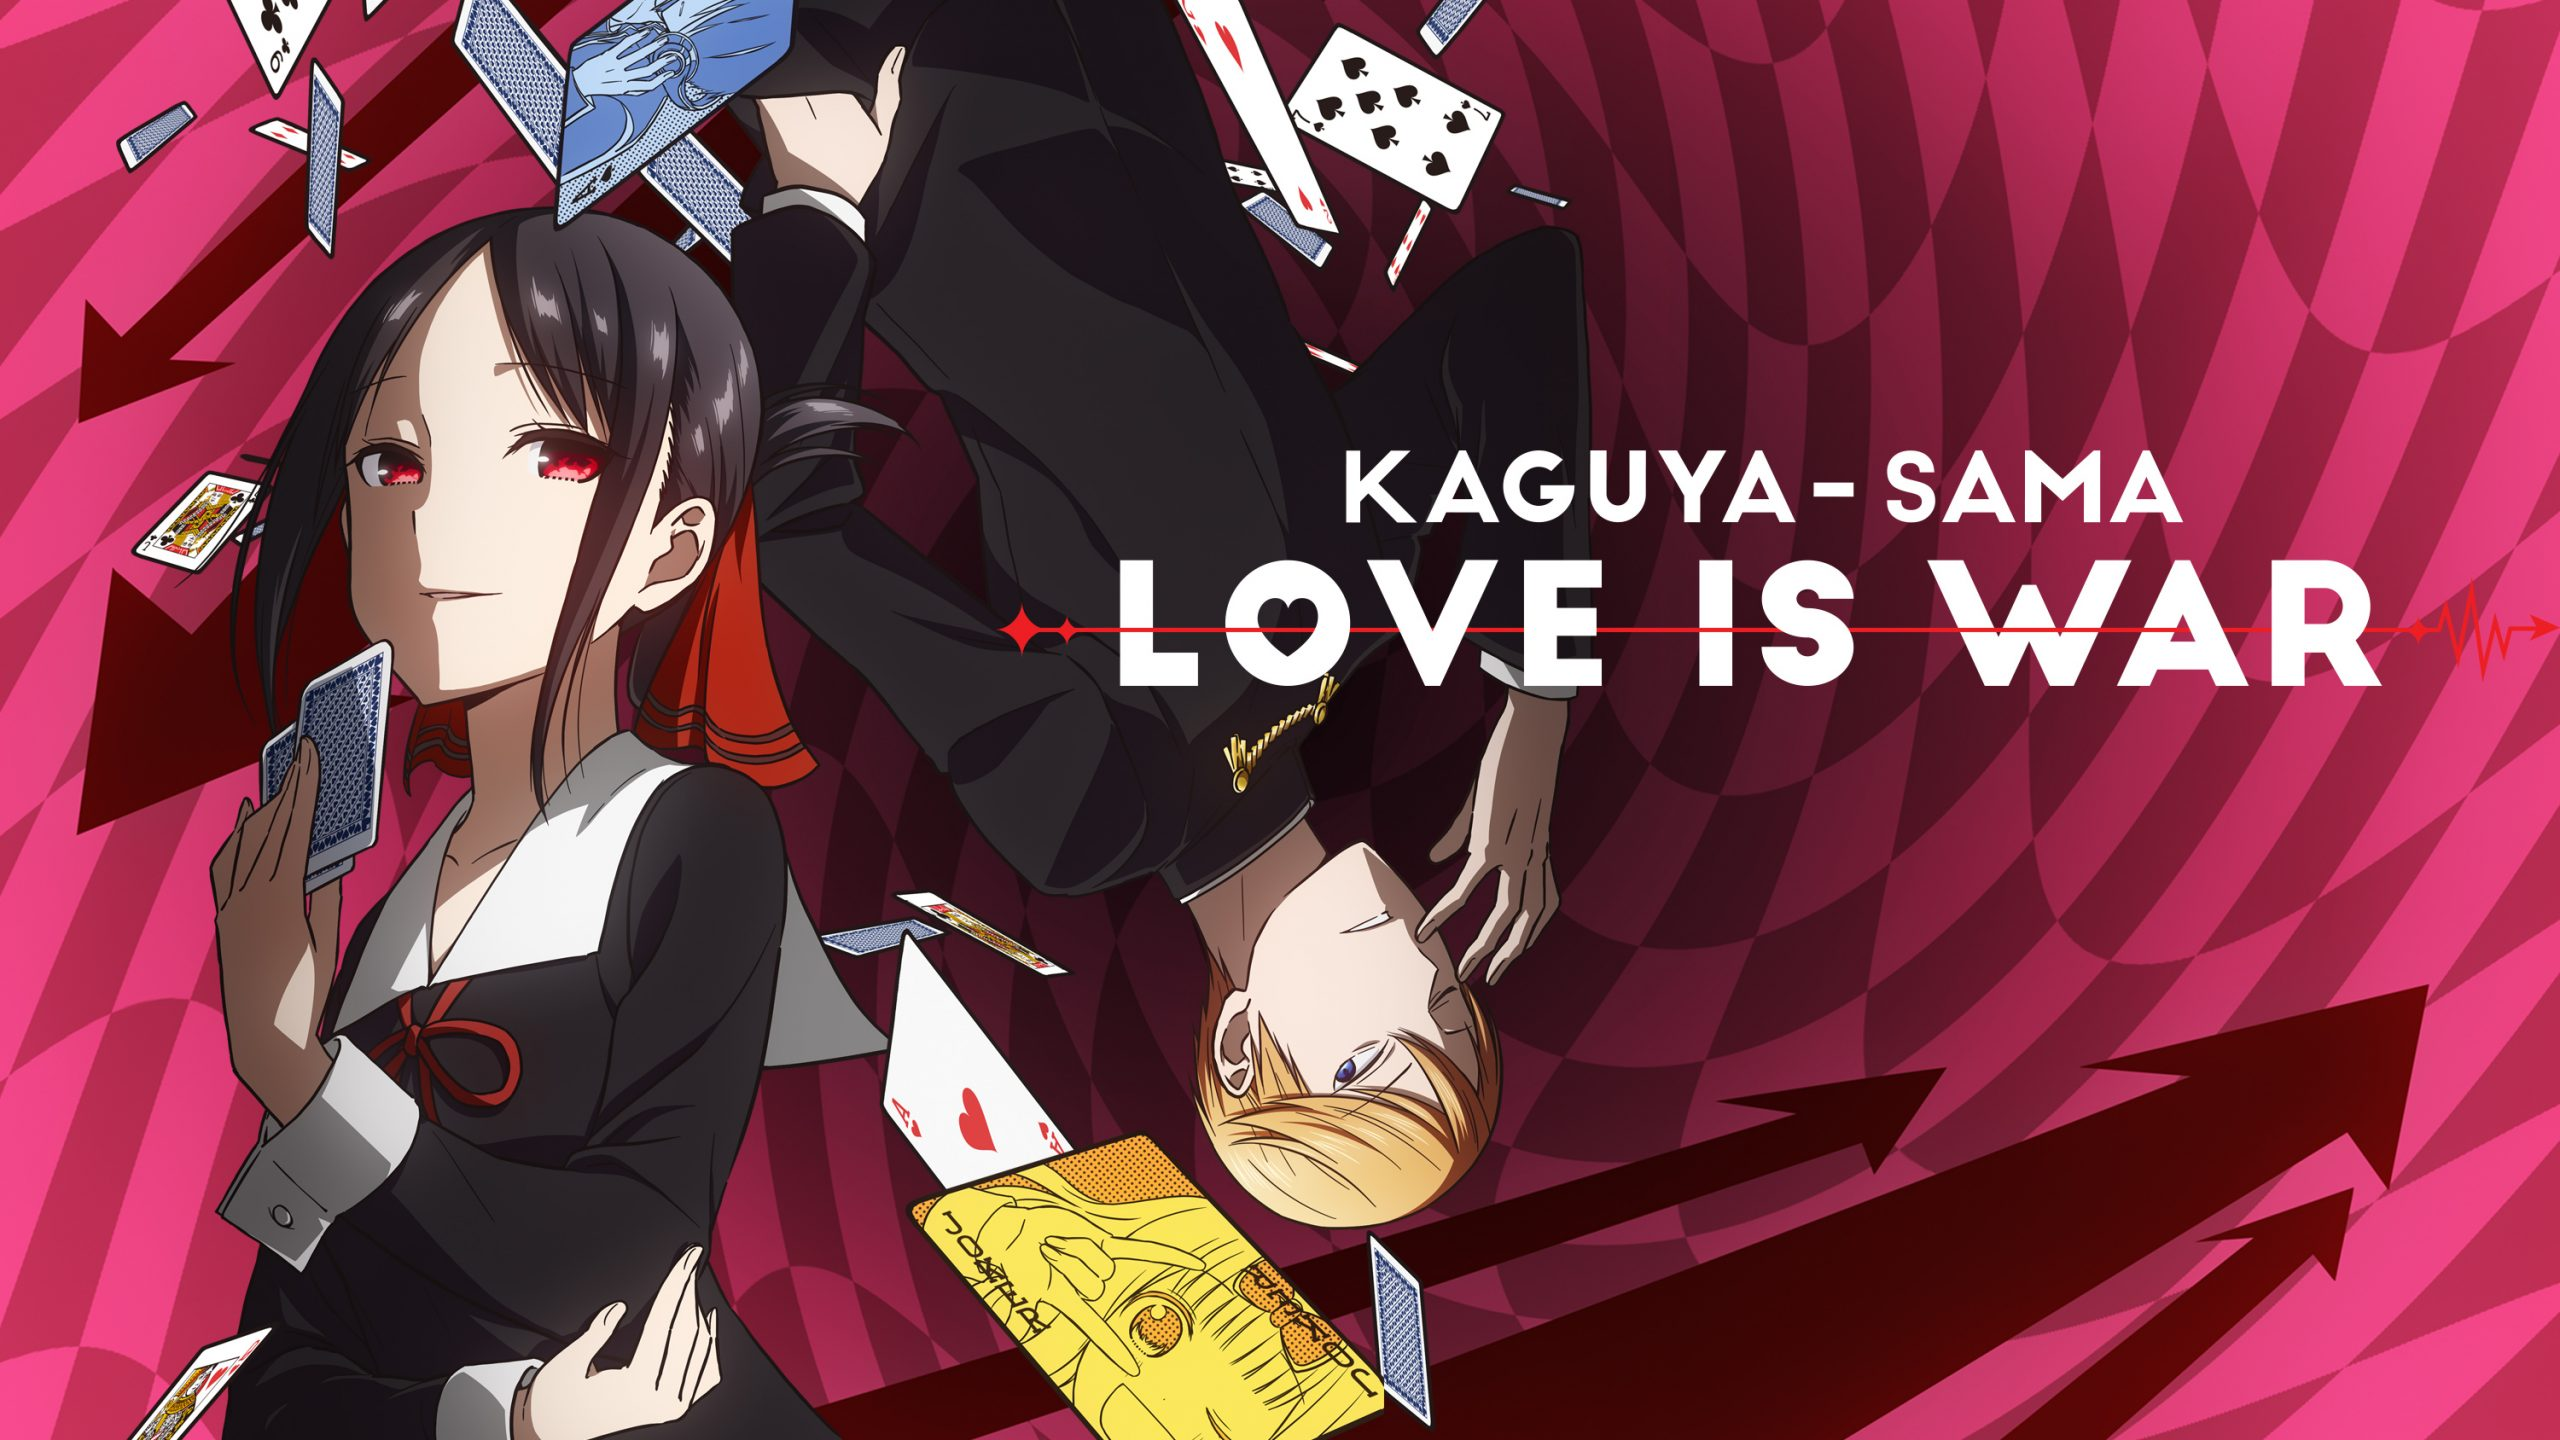 Kaguya-sama- Love Is War Chapter 198 Release Date, Raw Scans and Read Online